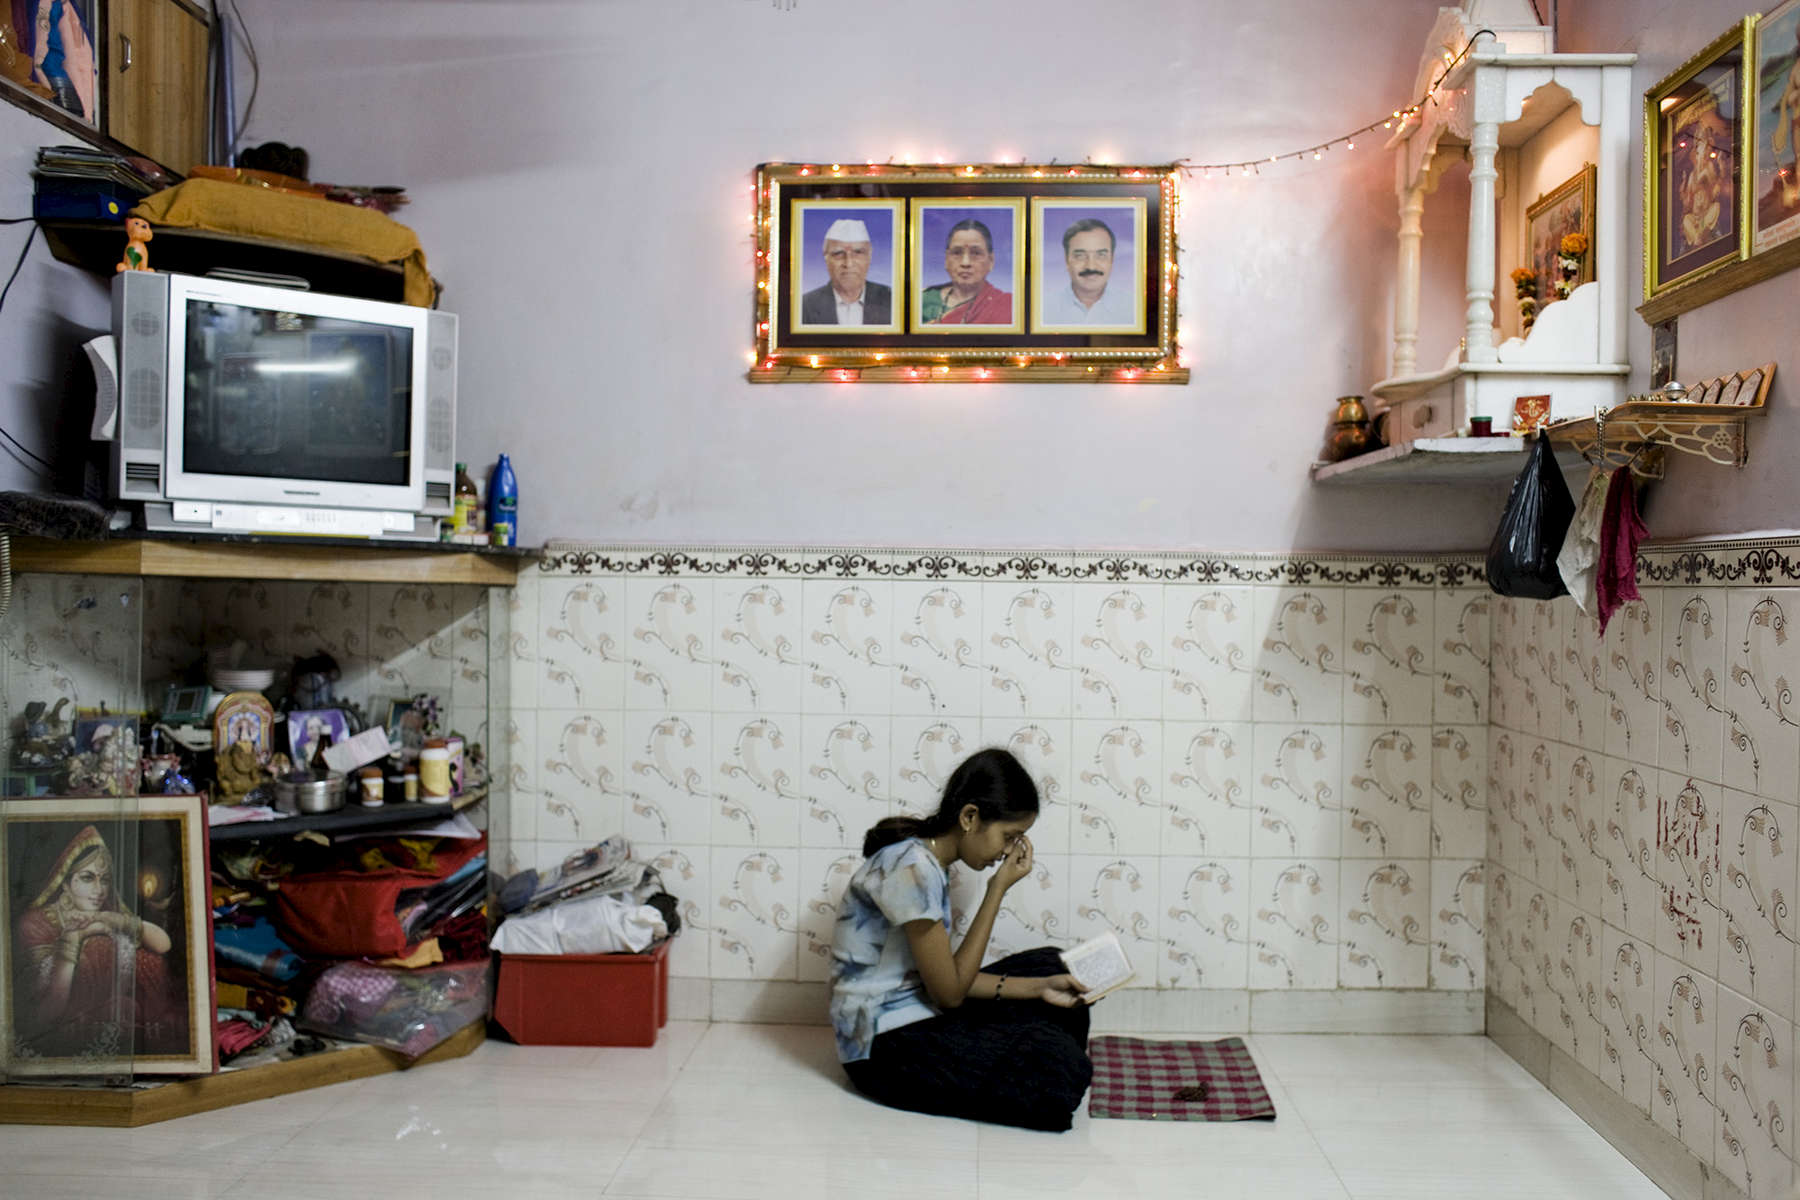 Namira, 16, prays in her house on the 6th floor of the building 53 in Lullubhai Compound, 17 November 2009.More than 60,000 people of any religious, live in this new kind of slum after their homes were demolished.